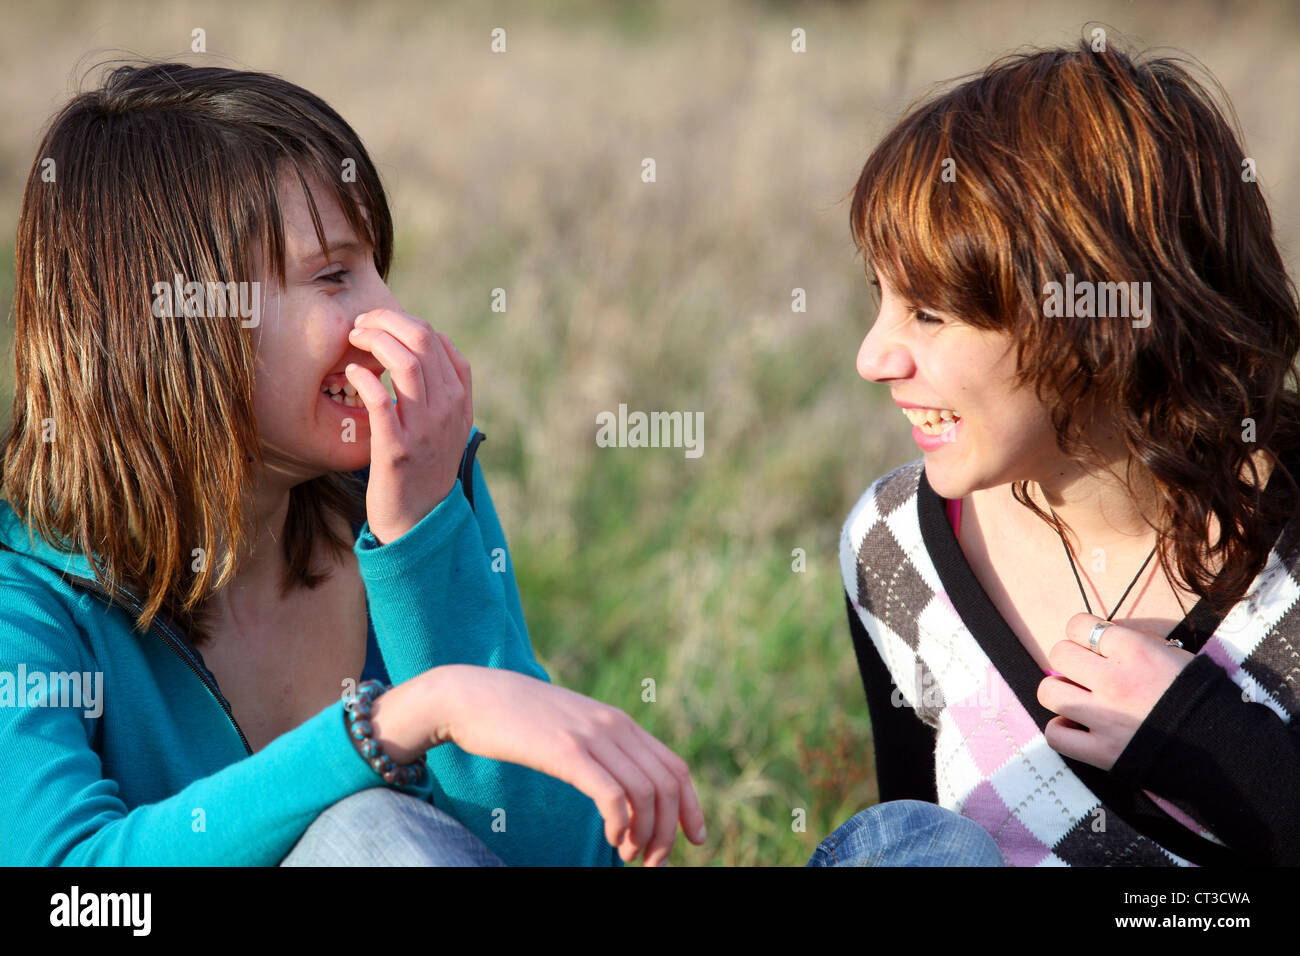 ADOLESCENT OUTDOORS - Stock Image